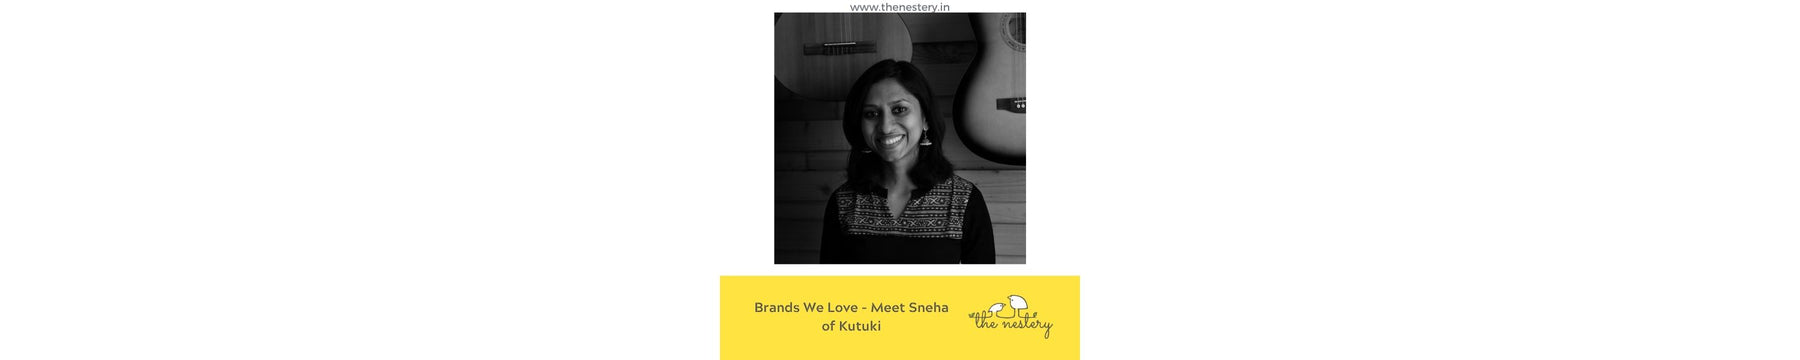 Brands We Love - Meet Sneha of Kutuki